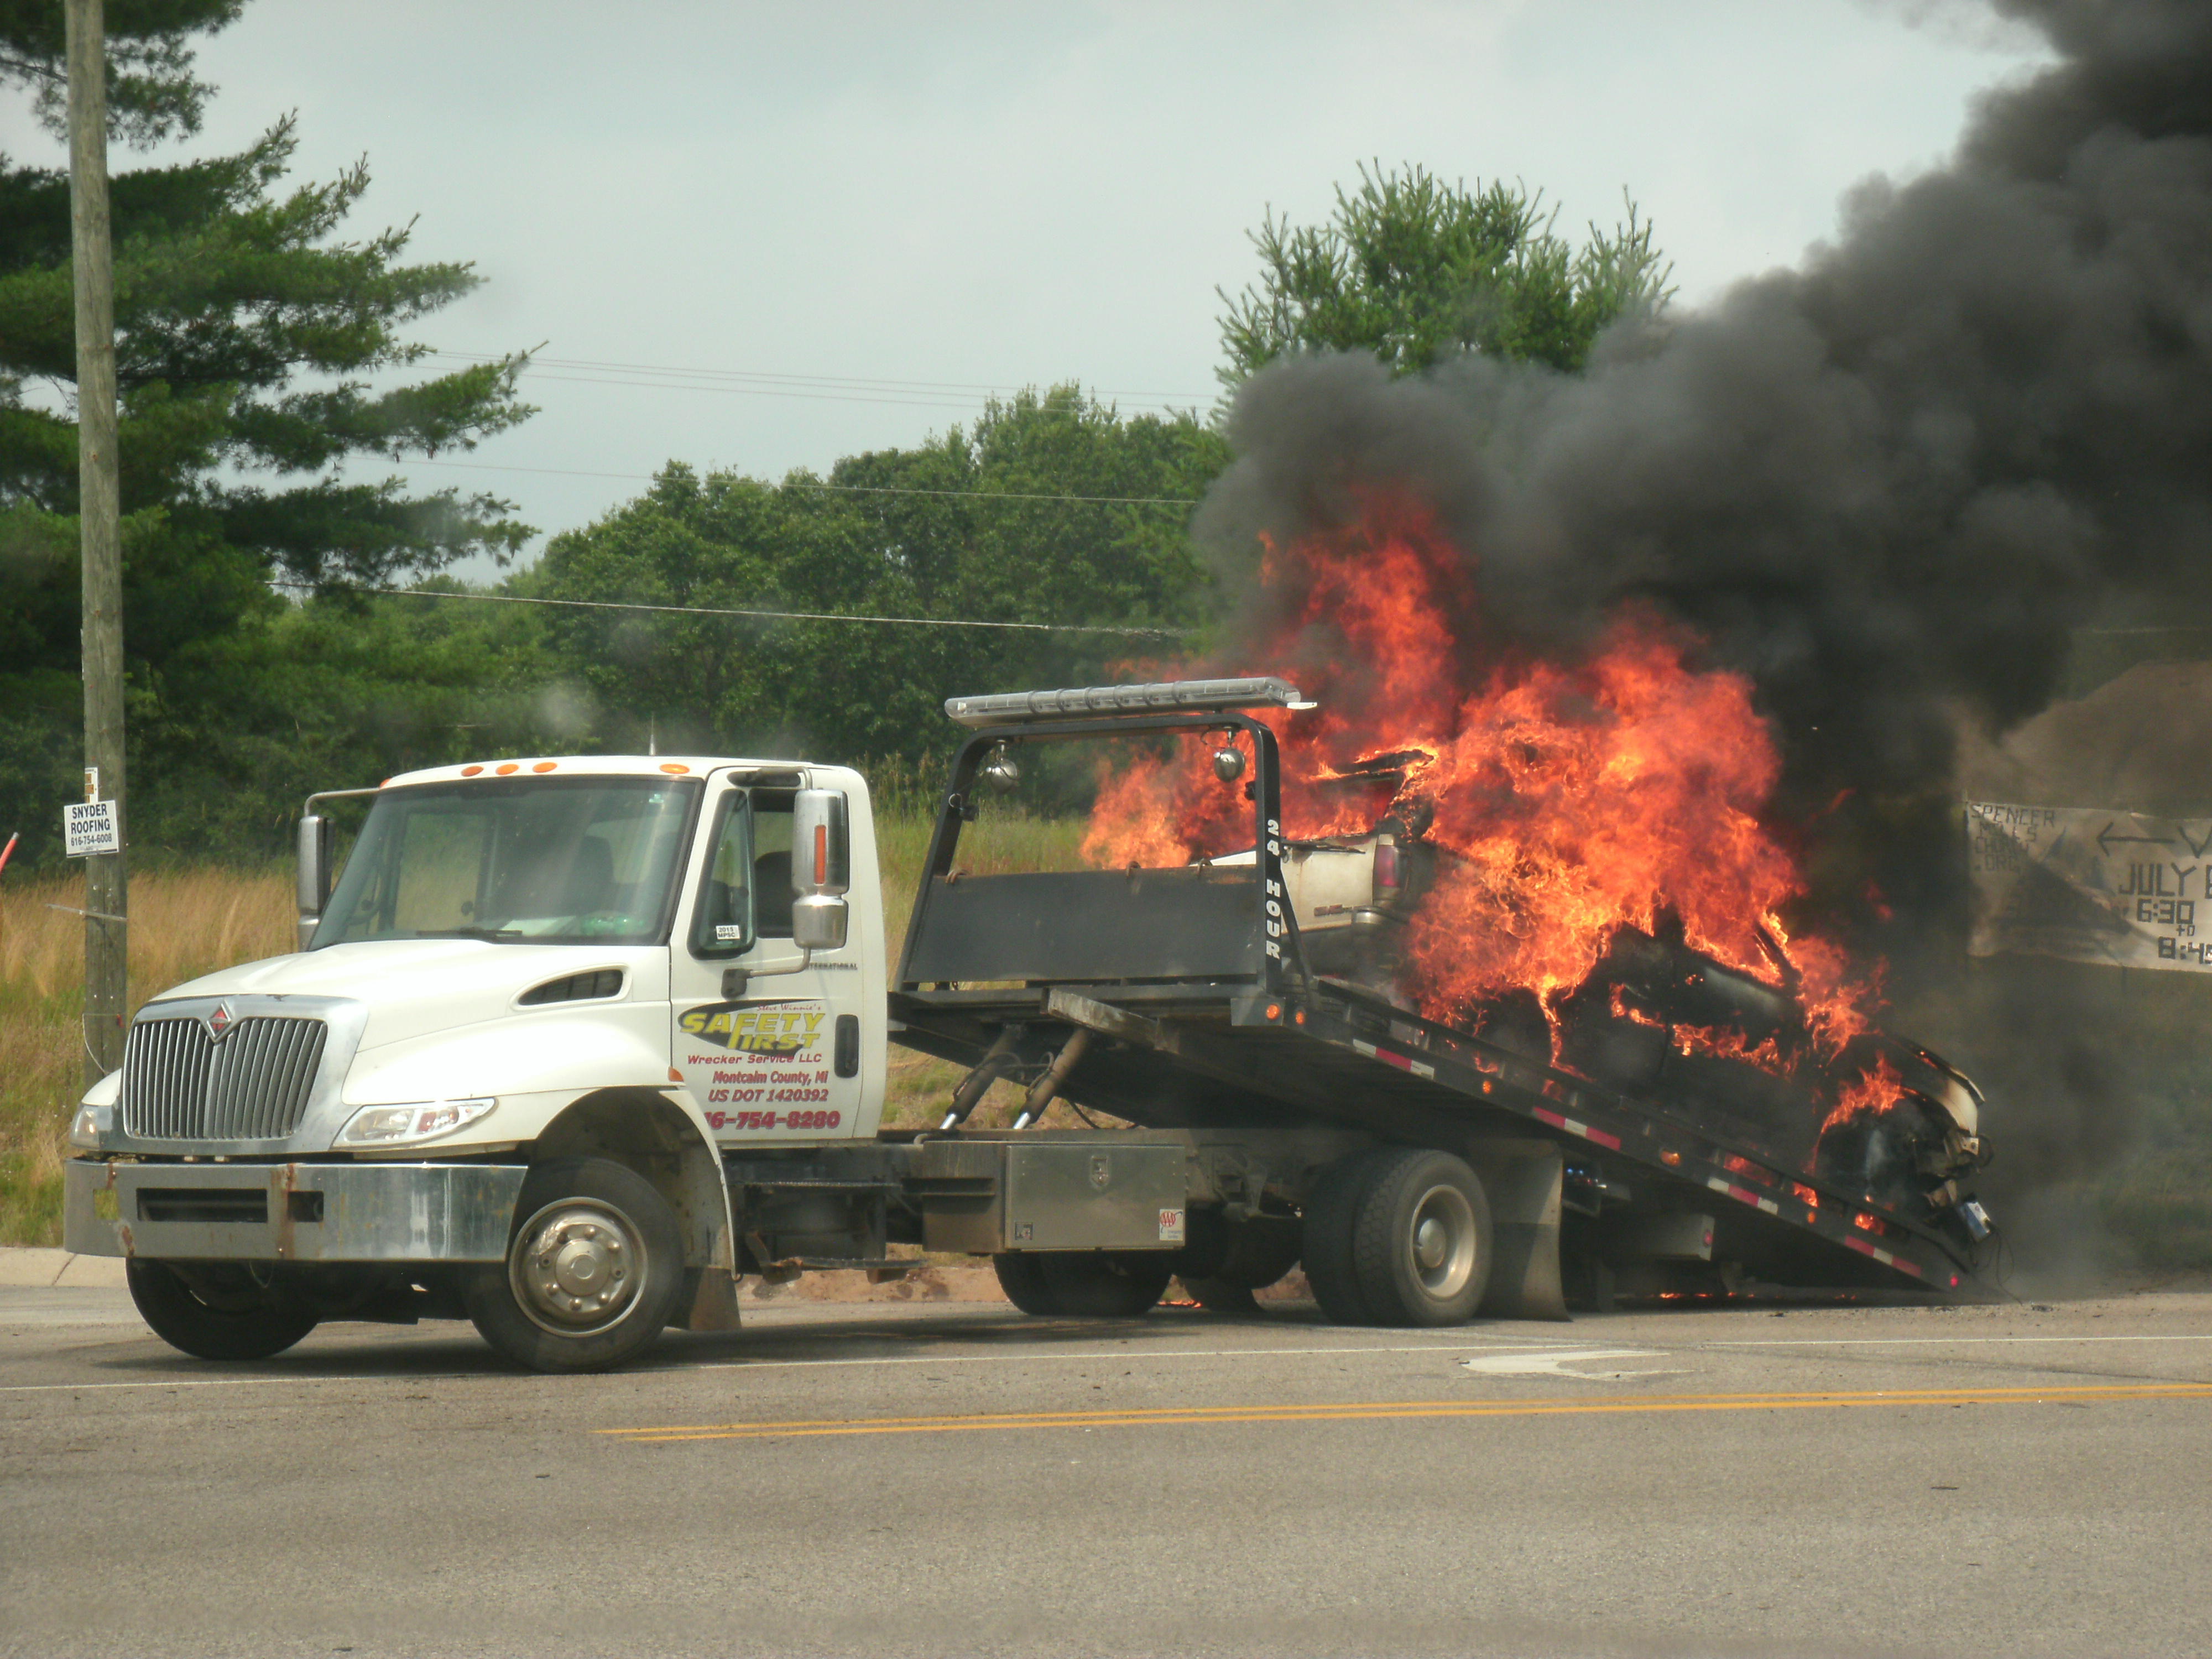 Two Hurt In Accident Vehicle Later Catches Fire Cedar Springs